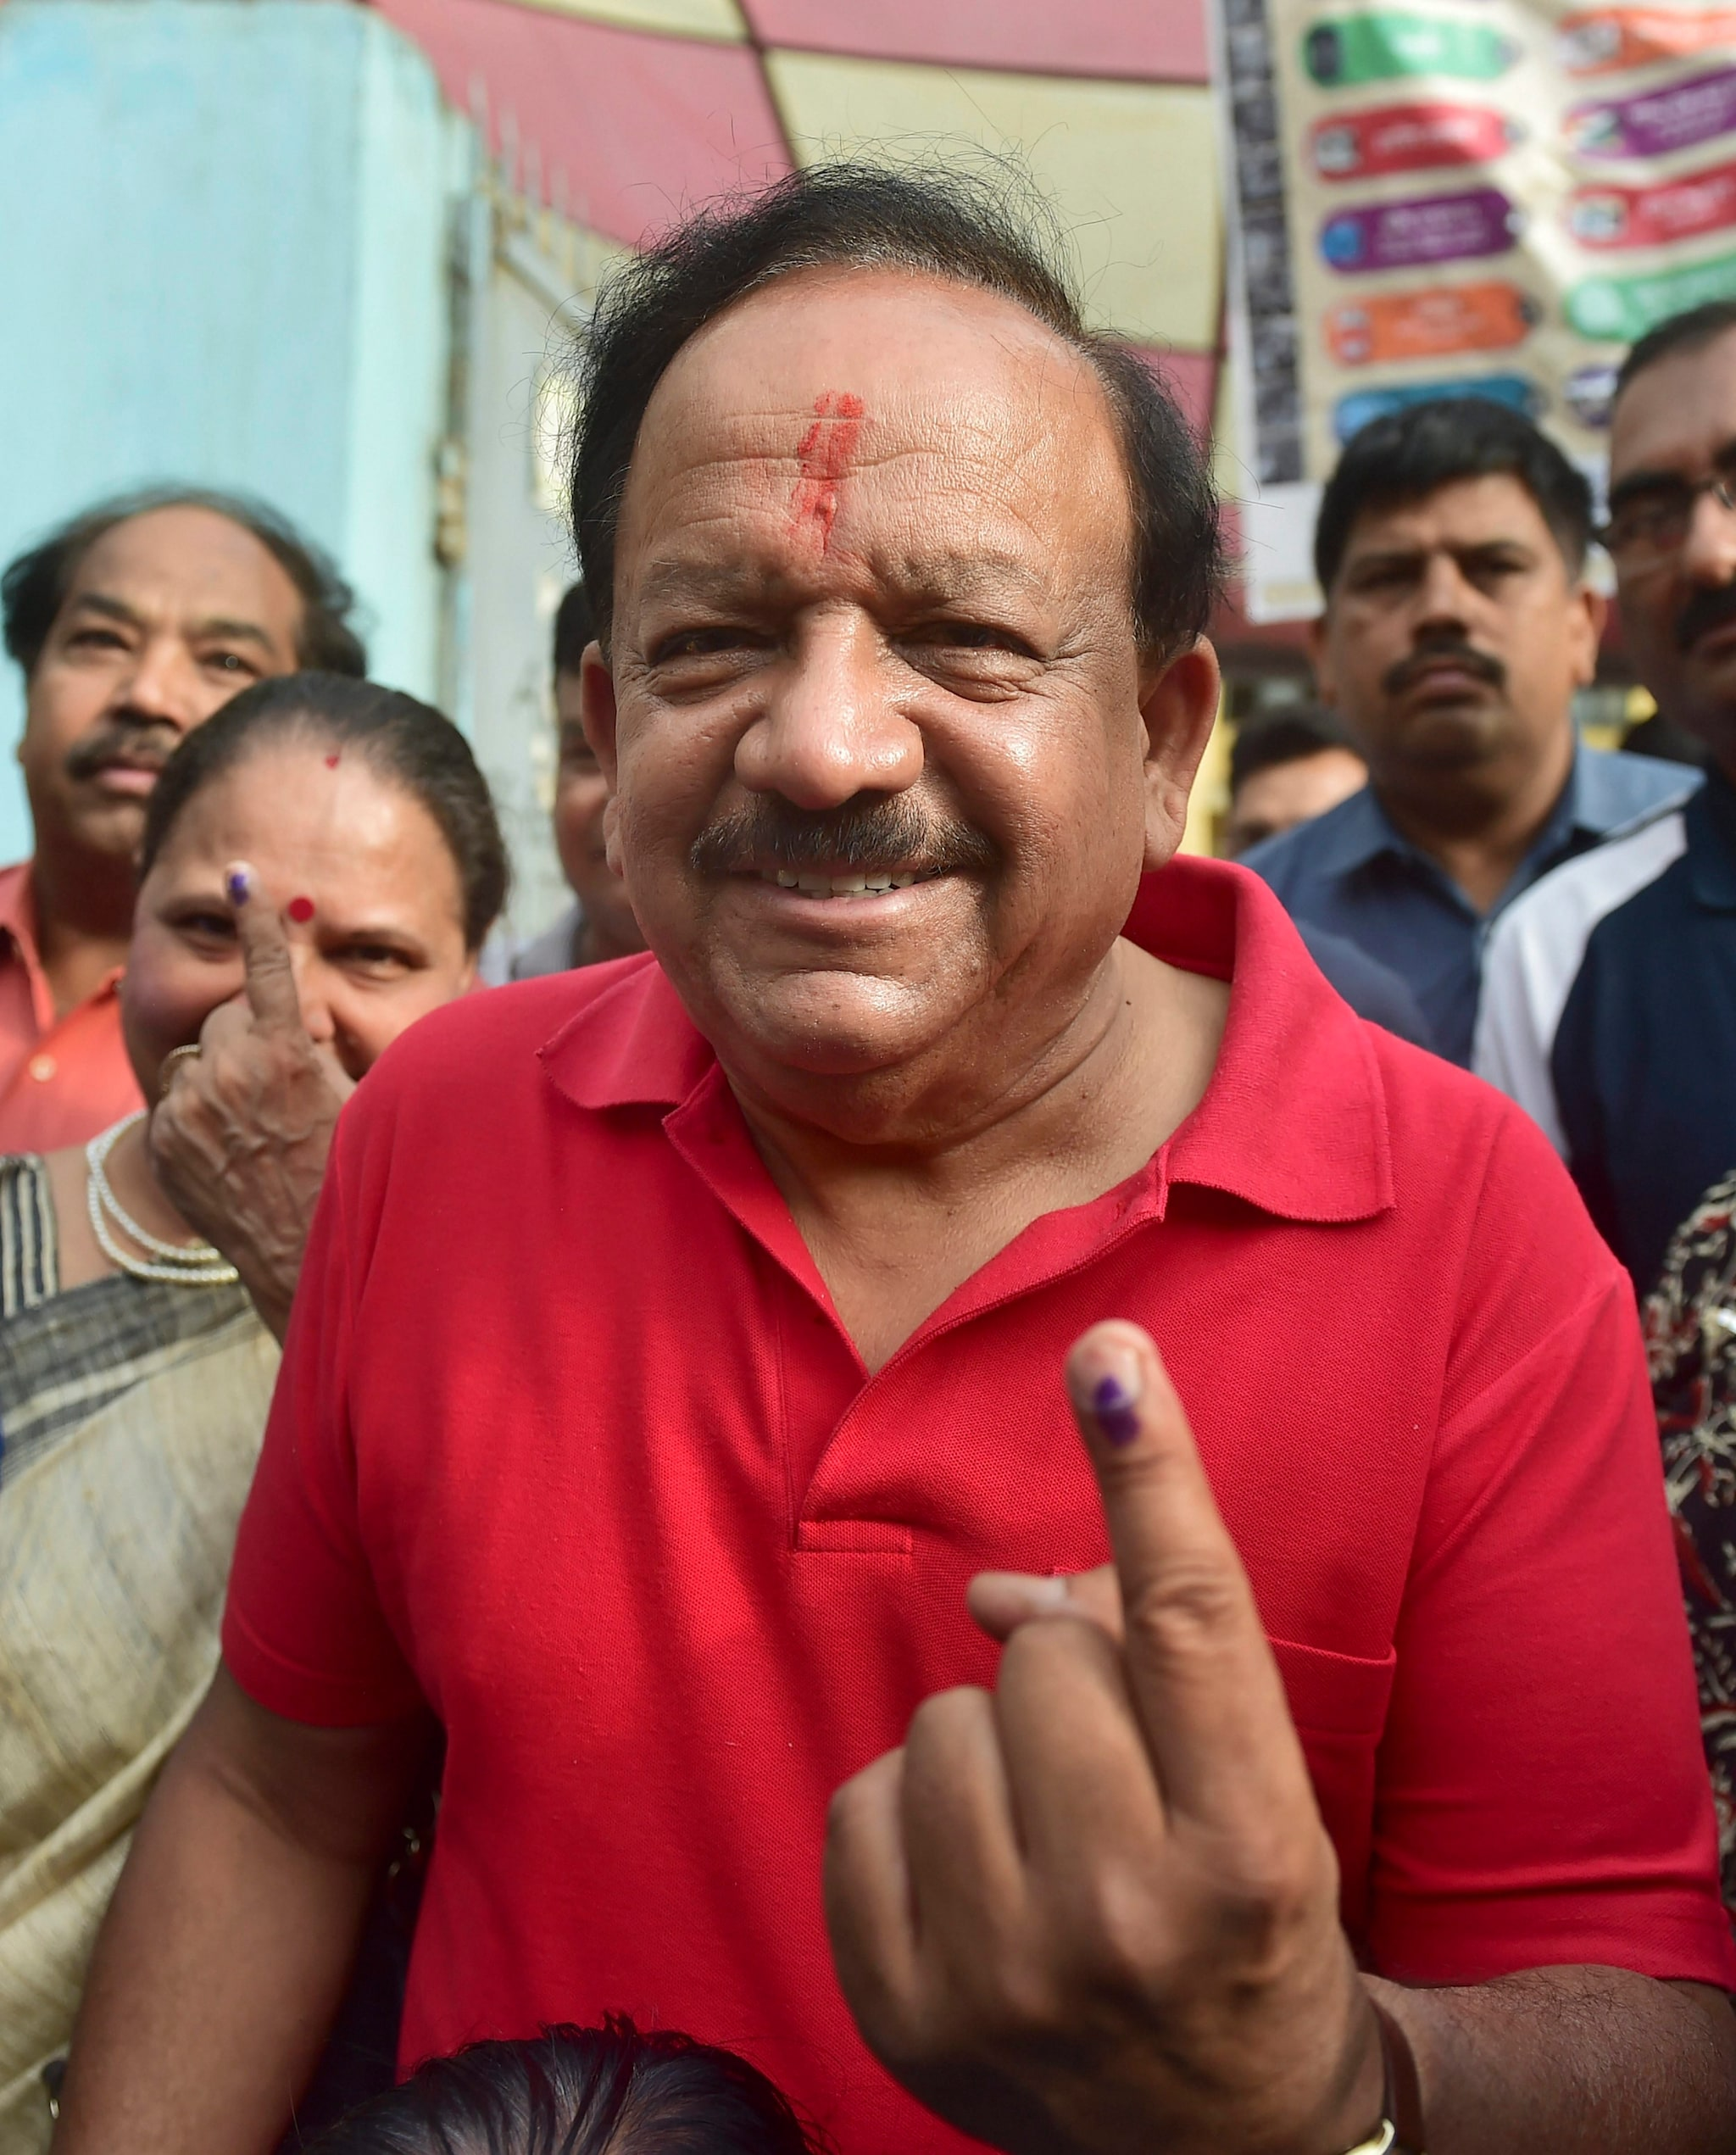 BJP's candidate from Chandni Chowk Harsh Vardhan, after casting his vote.